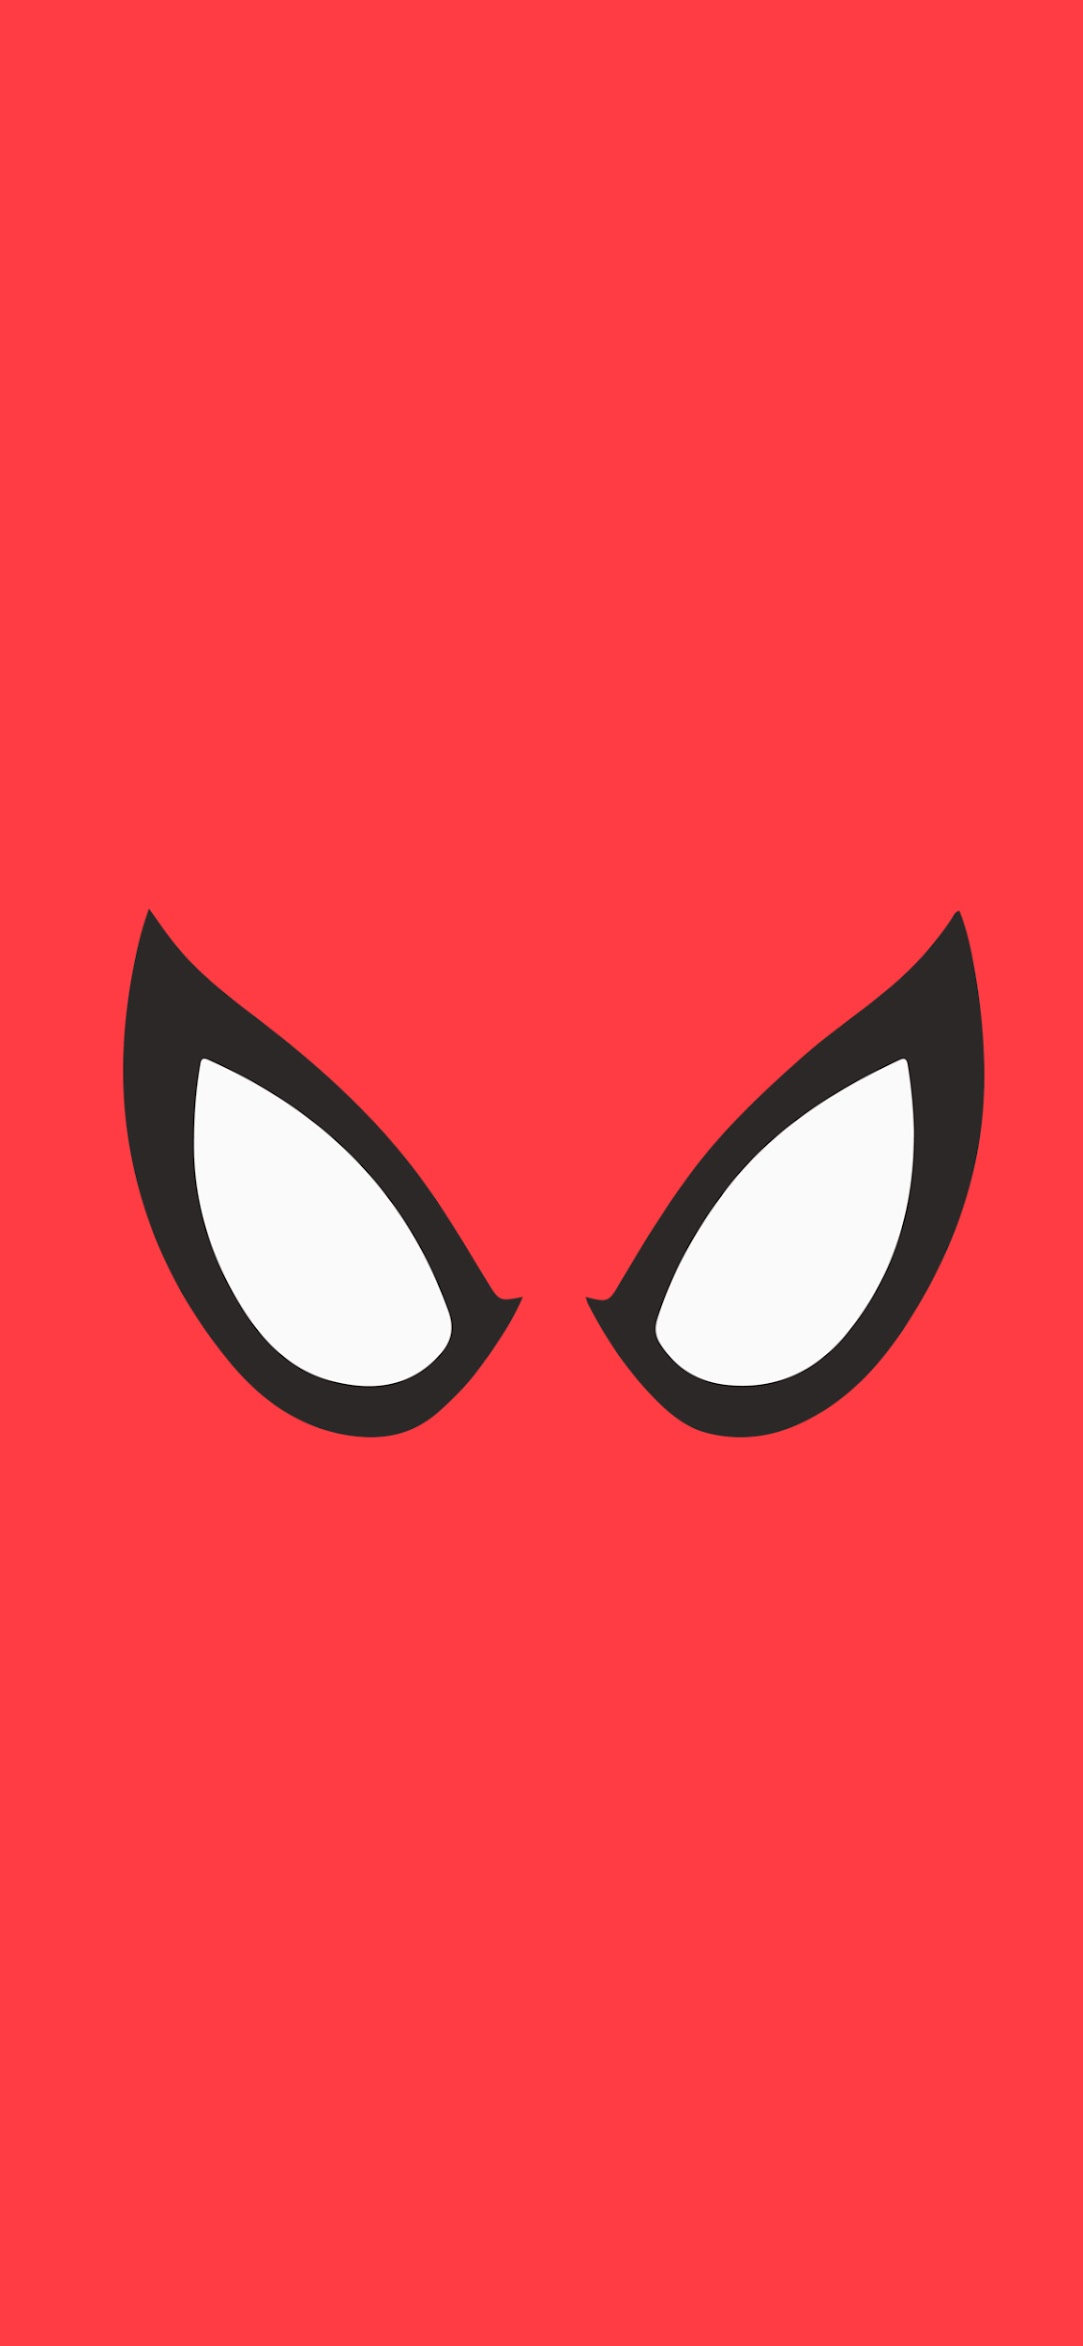 Spider-Man eyes minimal wallpaper